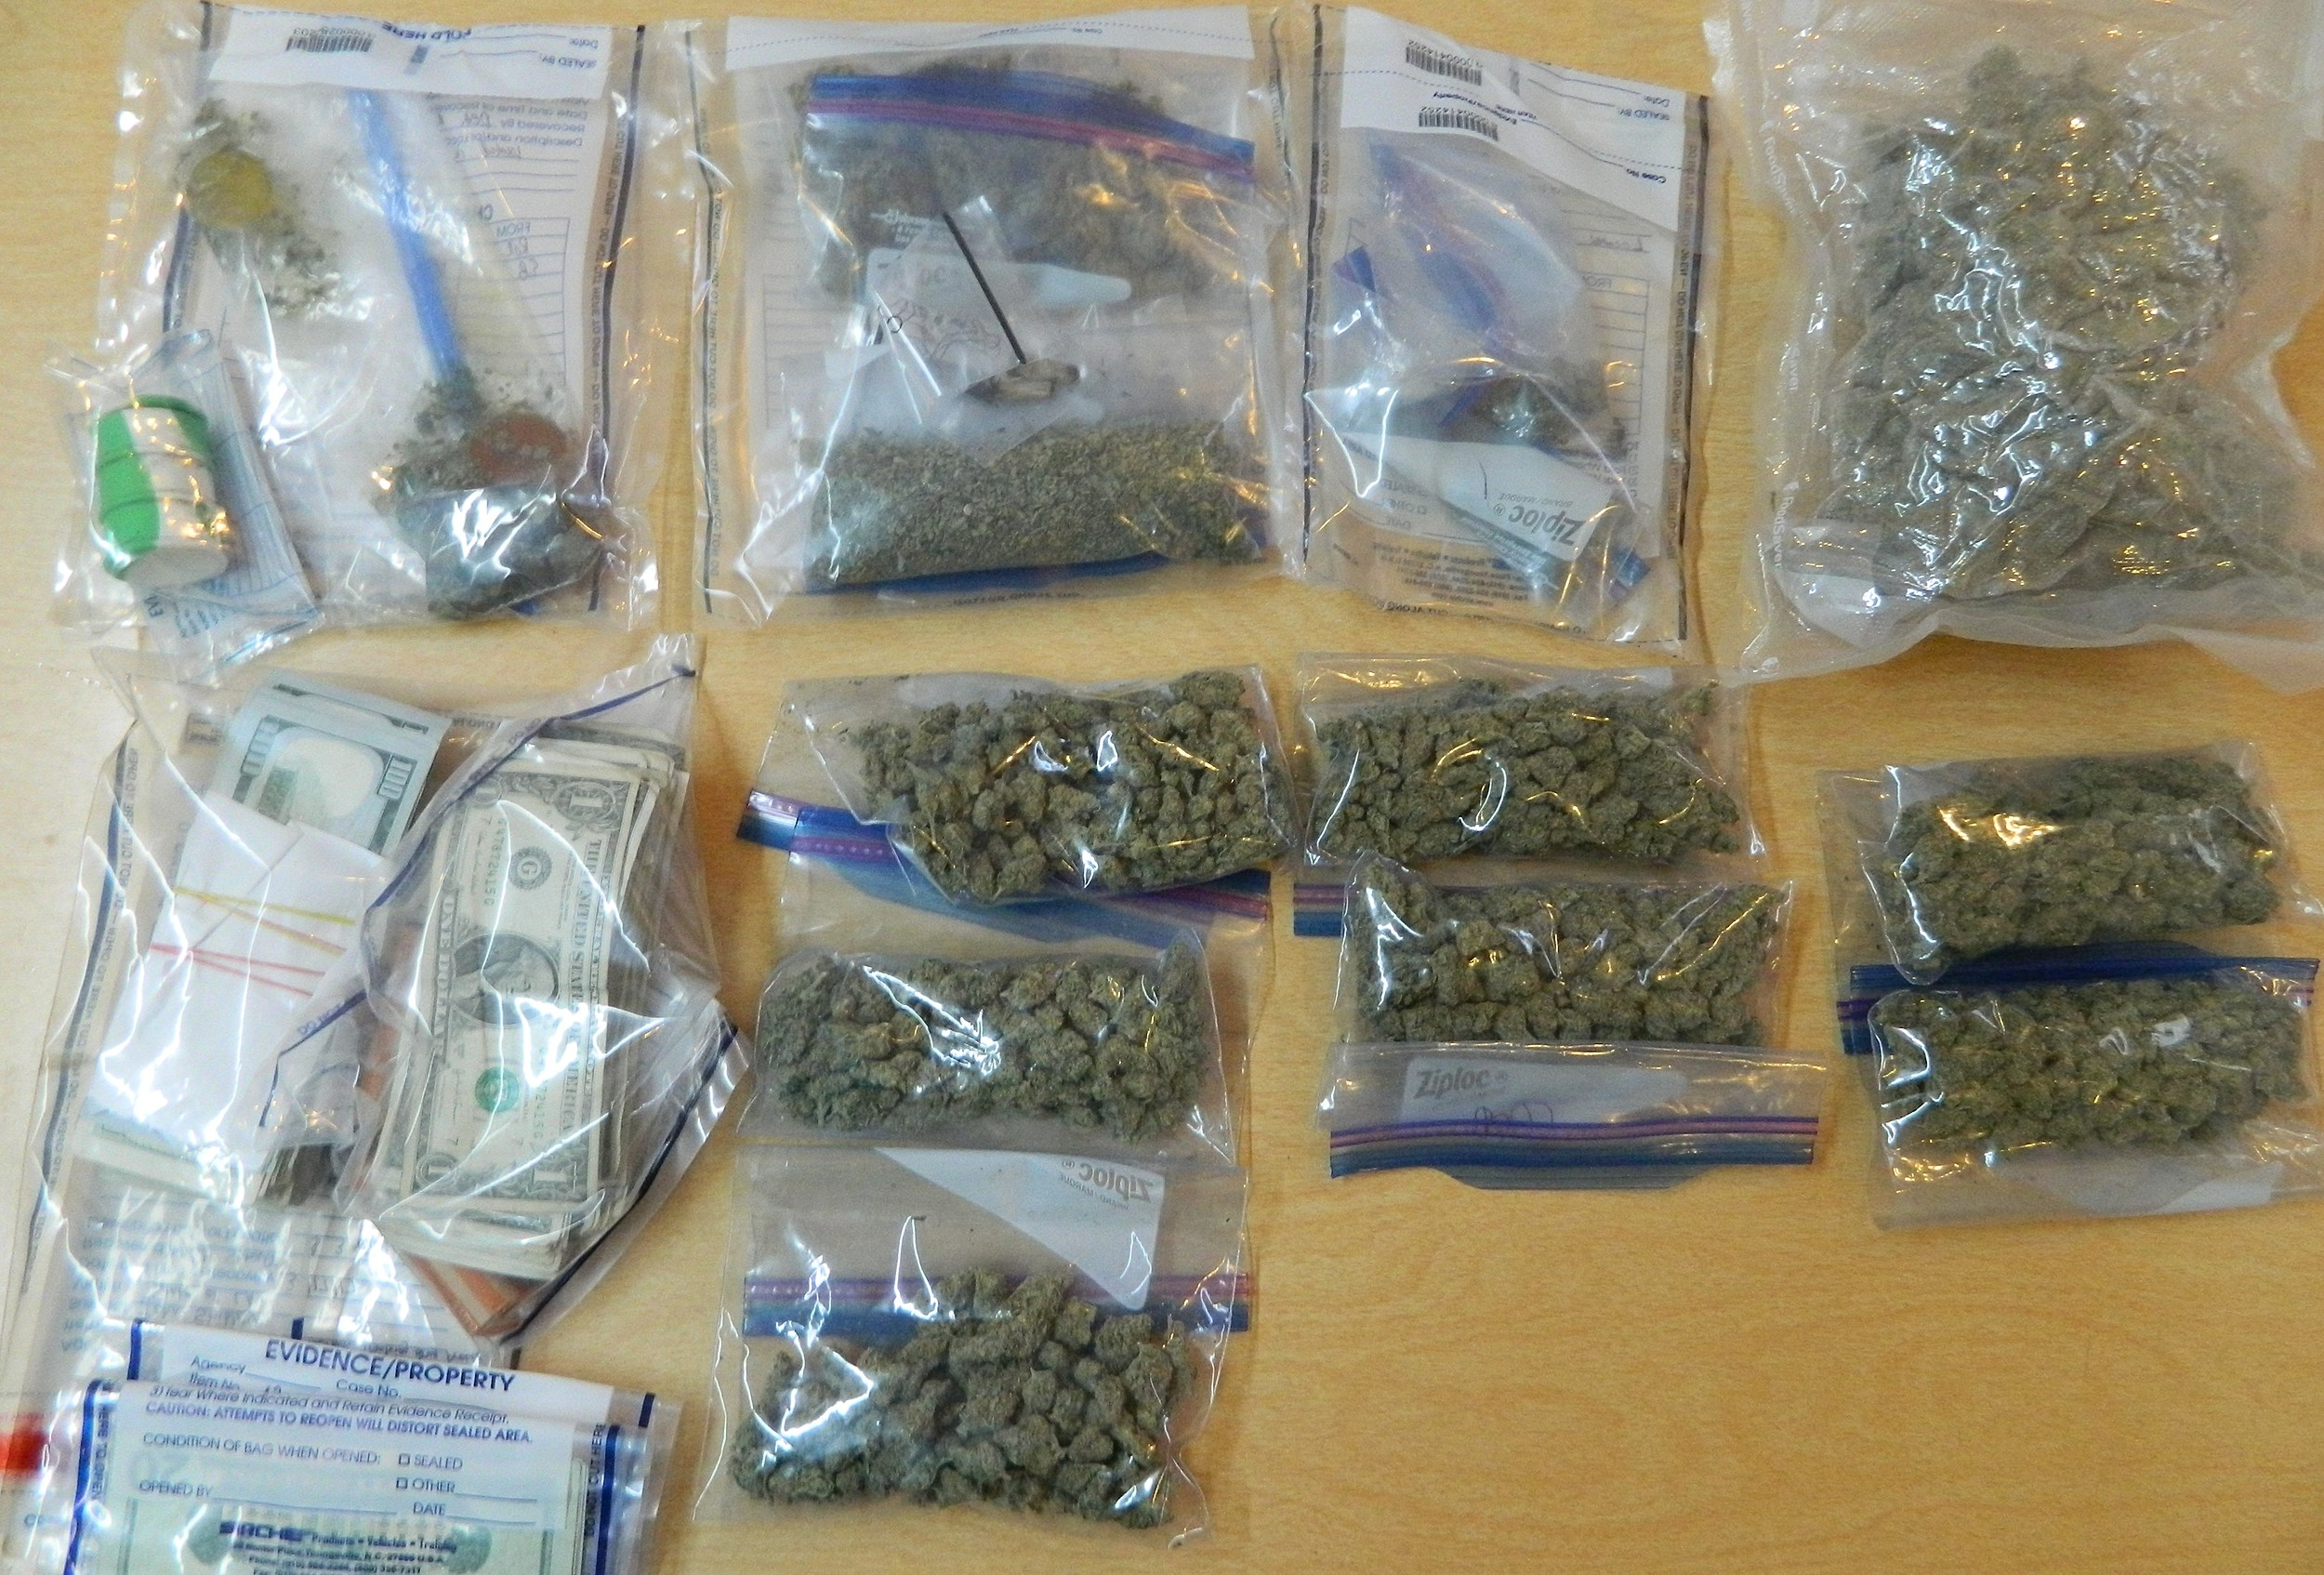 Drugs, photo courtesy of St. Mary Parish Sheriff's Office